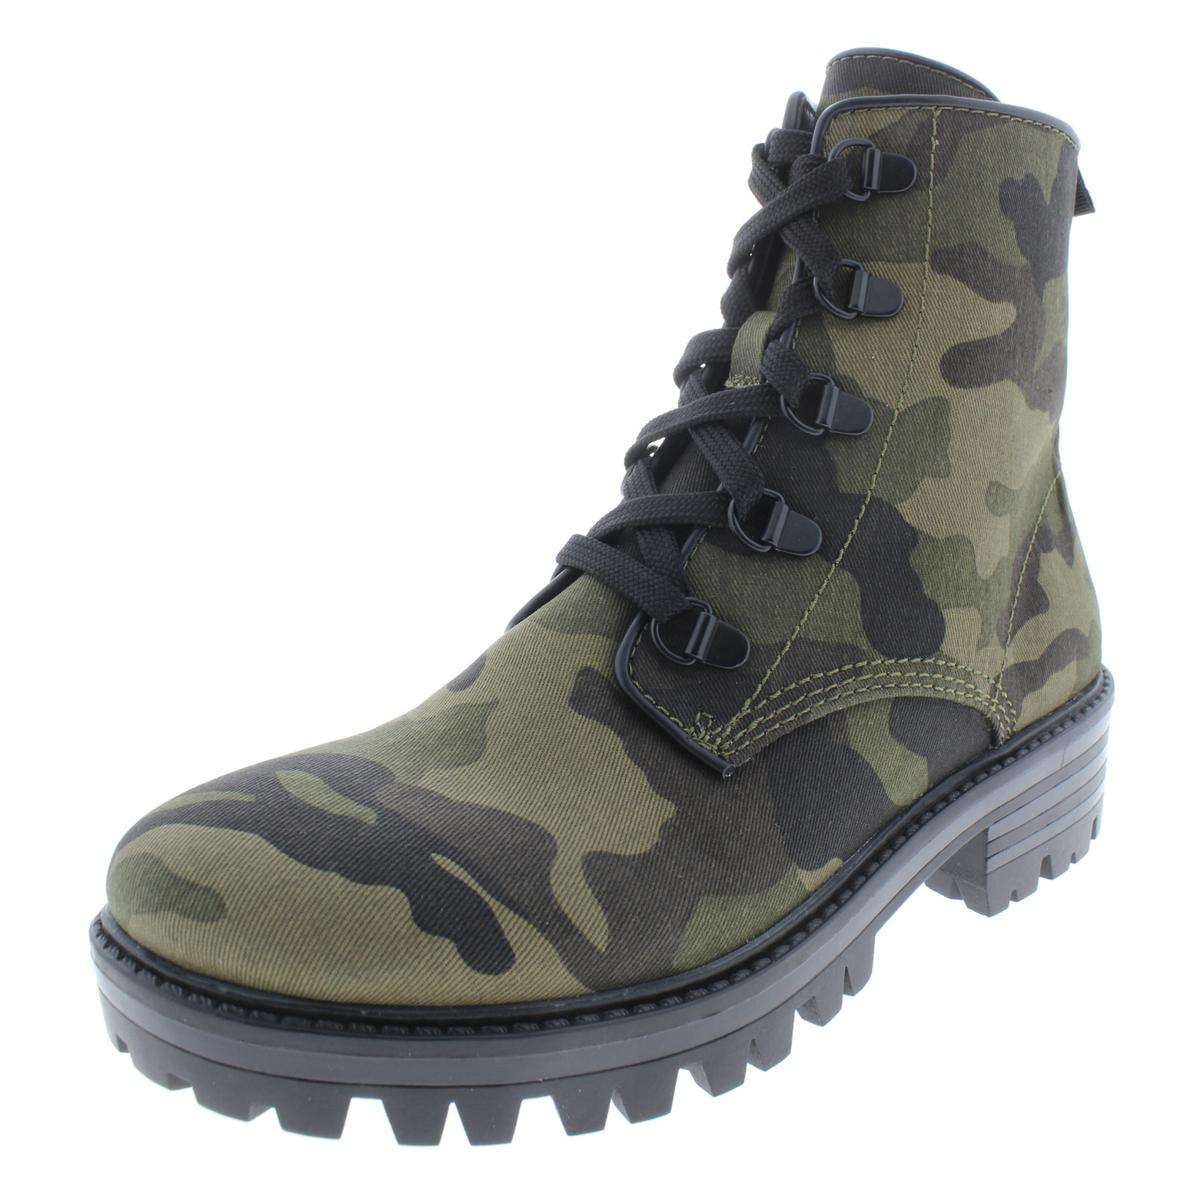 6e41f0aefd349 Details about Kendall + Kylie Womens Epic3 Ankle Camouflage Combat Boots  Shoes BHFO 9479